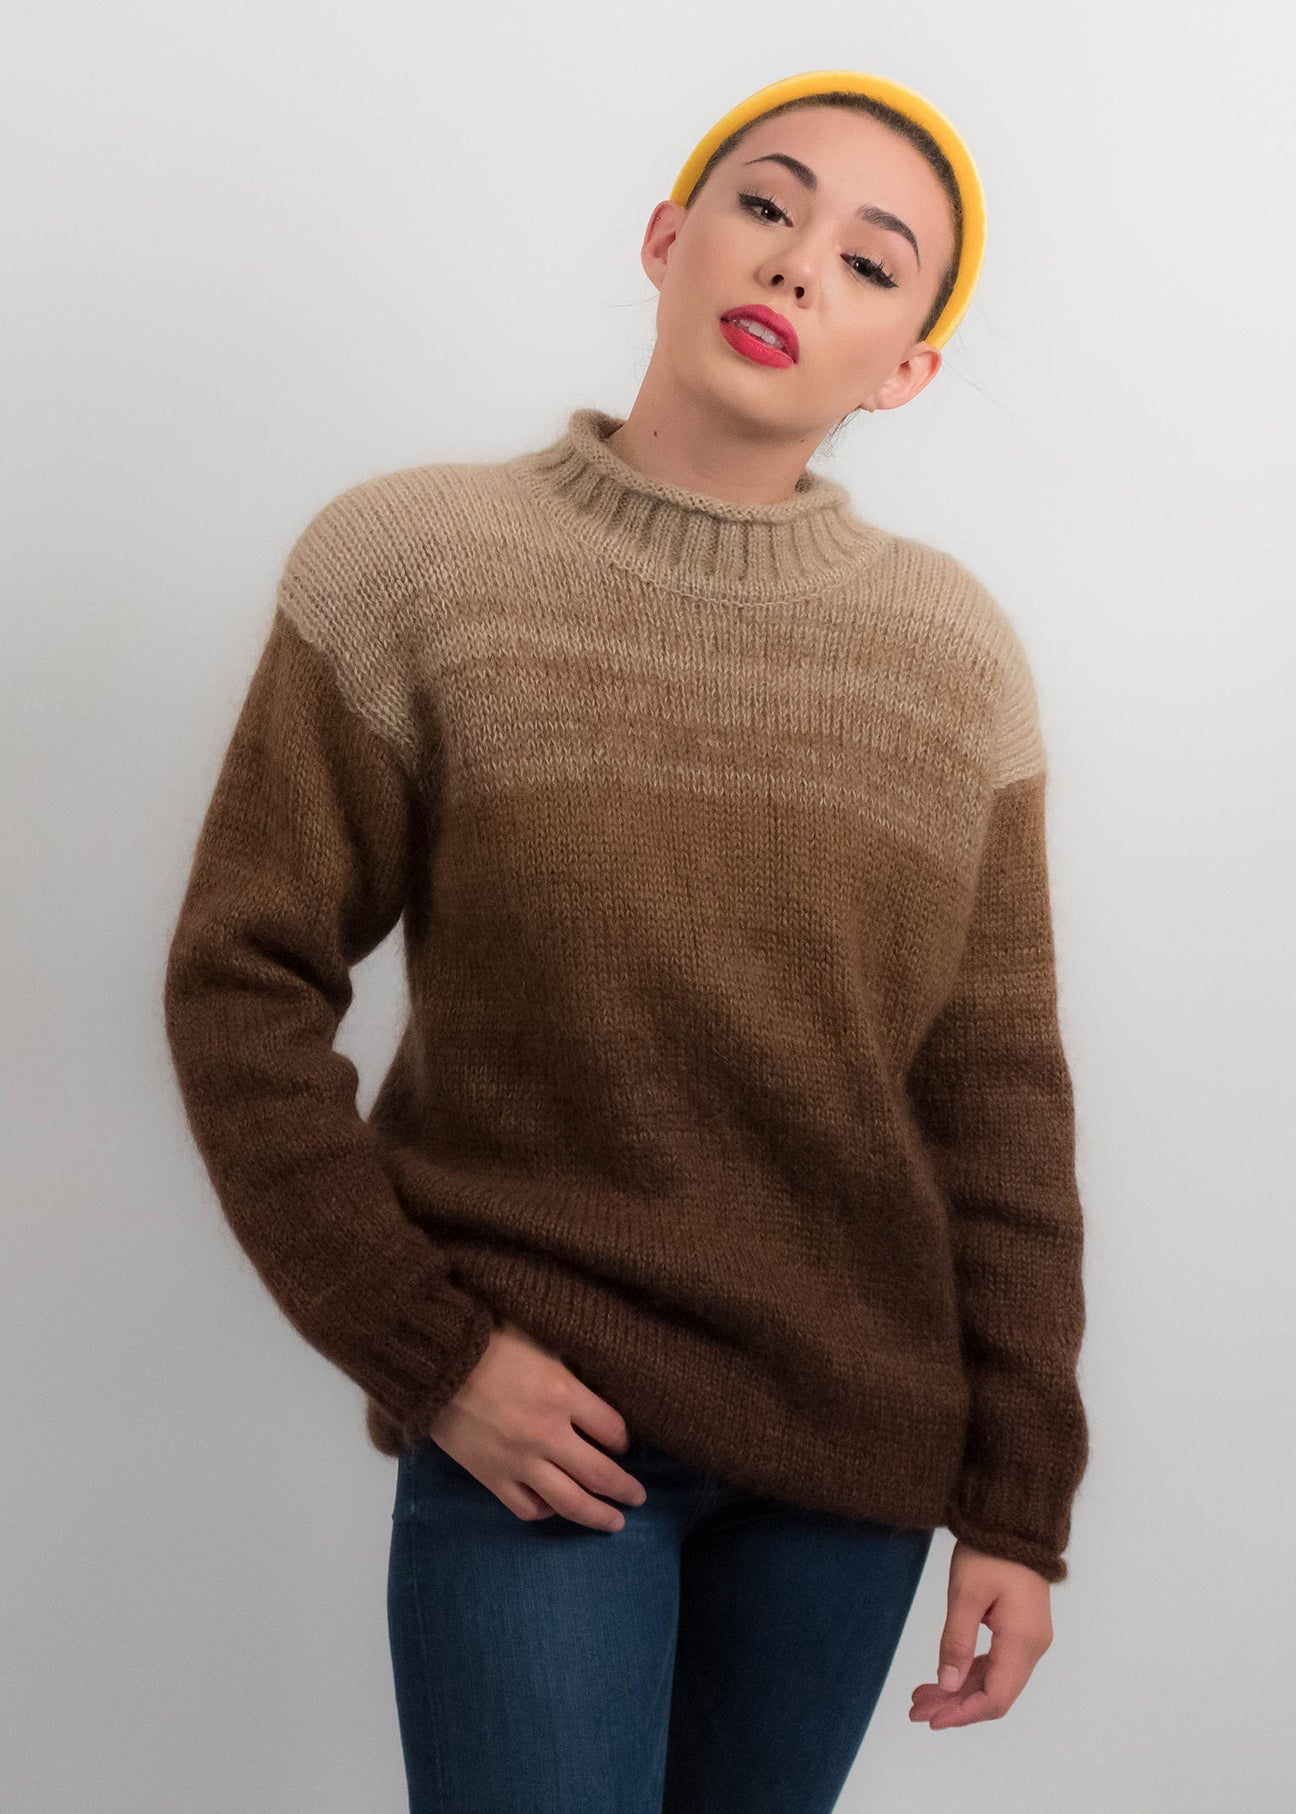 90s Ombre Mohair Sweater